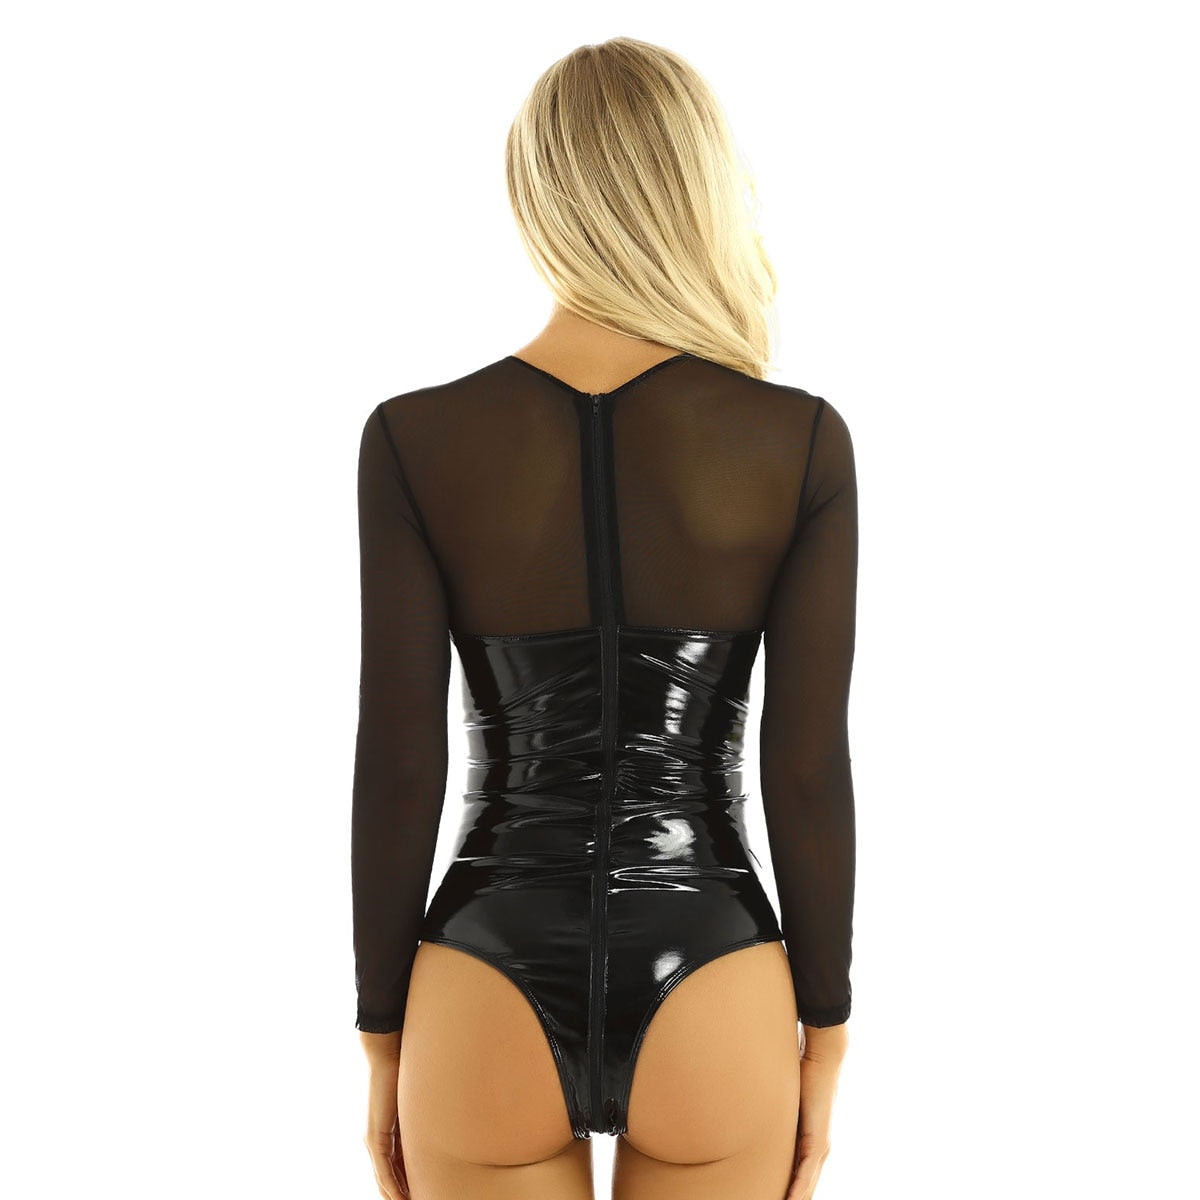 Women's Swimsuit One-piece Wetlook Patent Leather Bodysuit Lingerie Round Neck Swimwear Double Zipper High Cut Leotard Bodysuit - Smoulder Products